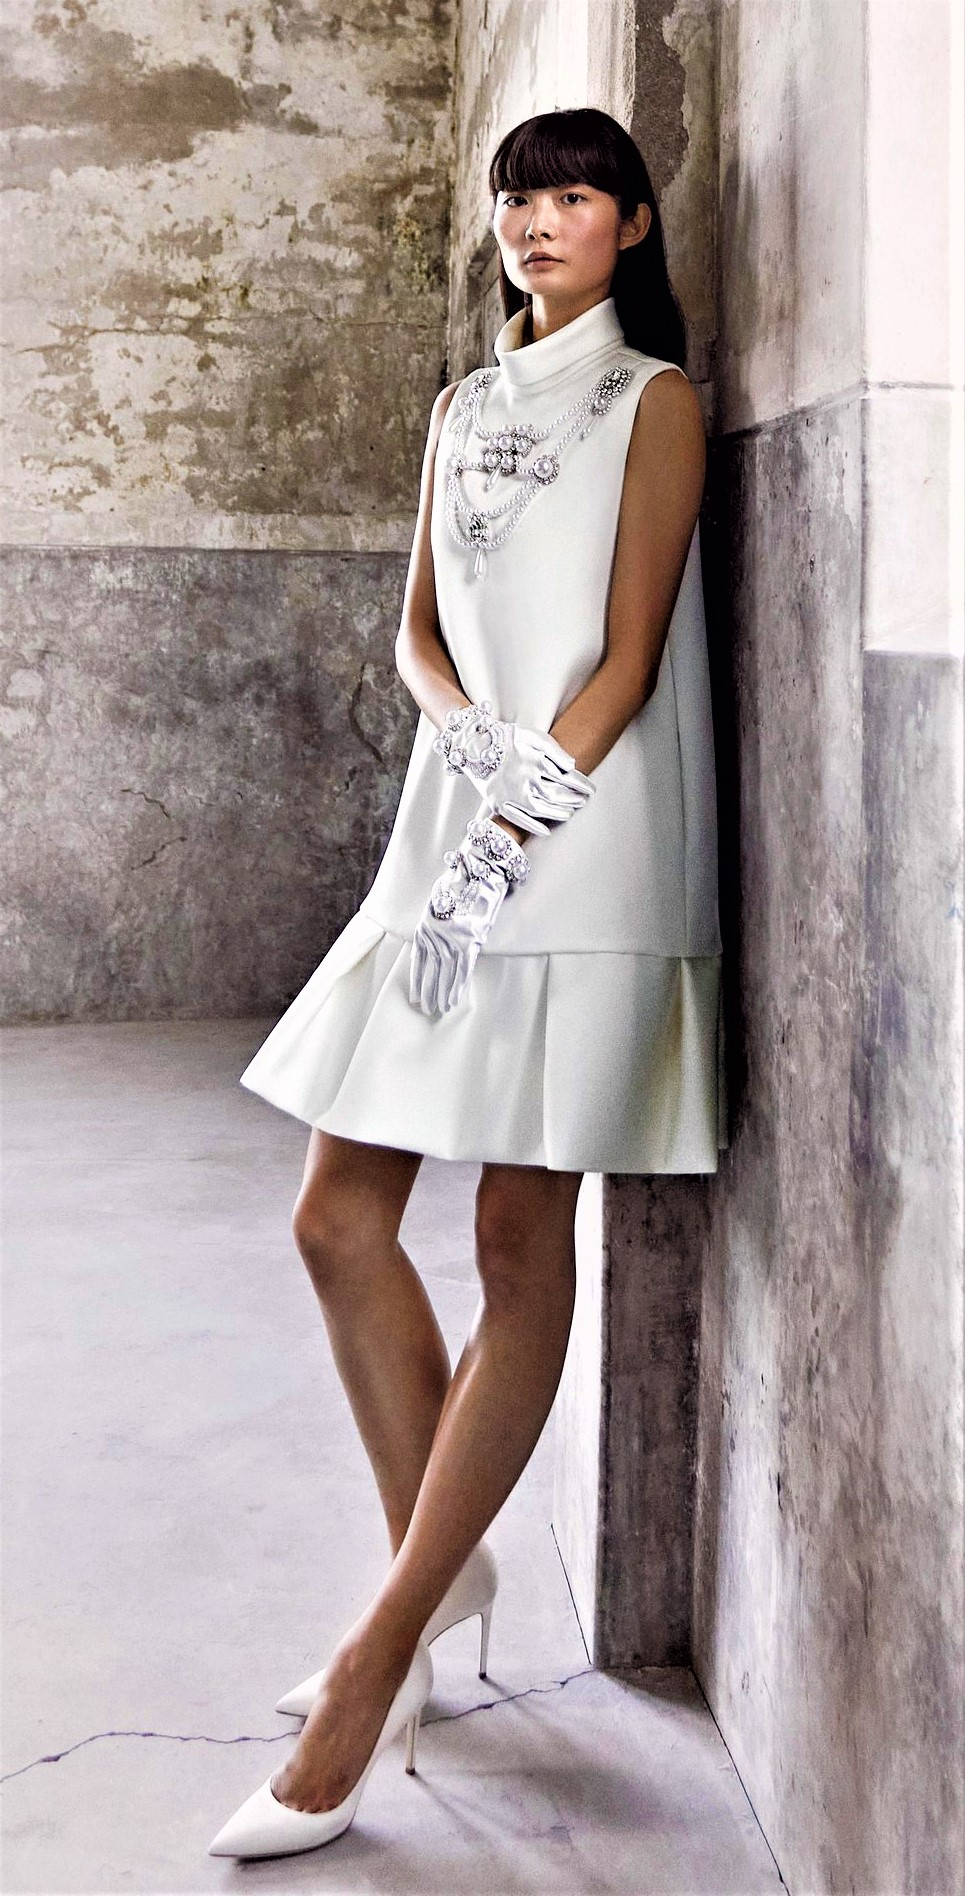 Viktor Rolf Mariage Short jeweled gown Bridal 10-20 pynck (4) cropped.jpg